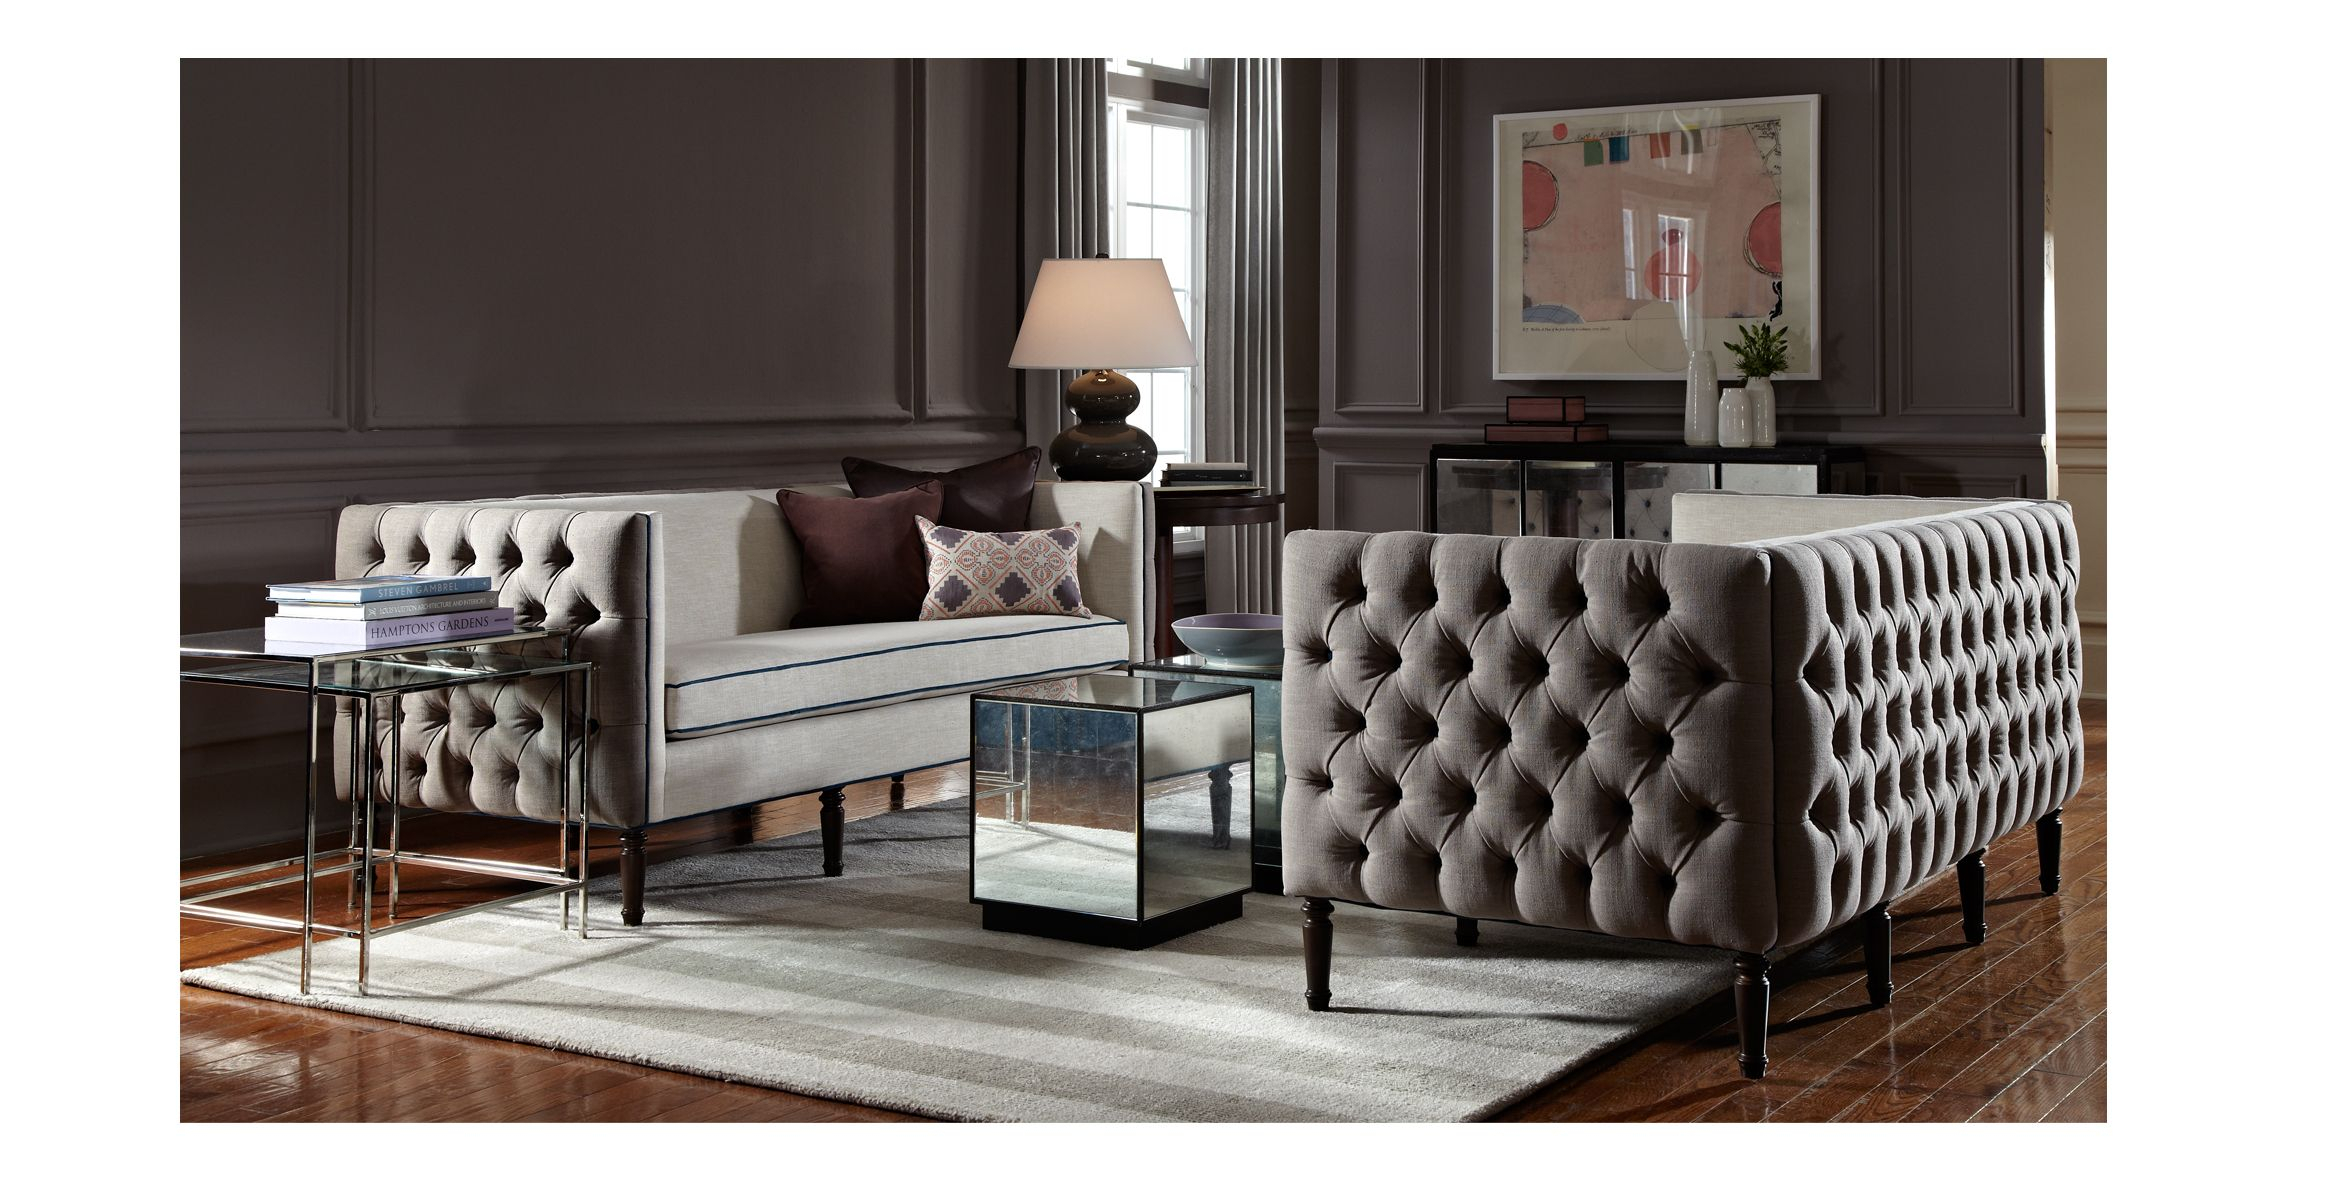 Modern Tufted Sofa - Google Search | Turn Of The Century Moderne throughout Parsons Grey Marble Top & Brass Base 48X16 Console Tables (Image 17 of 30)